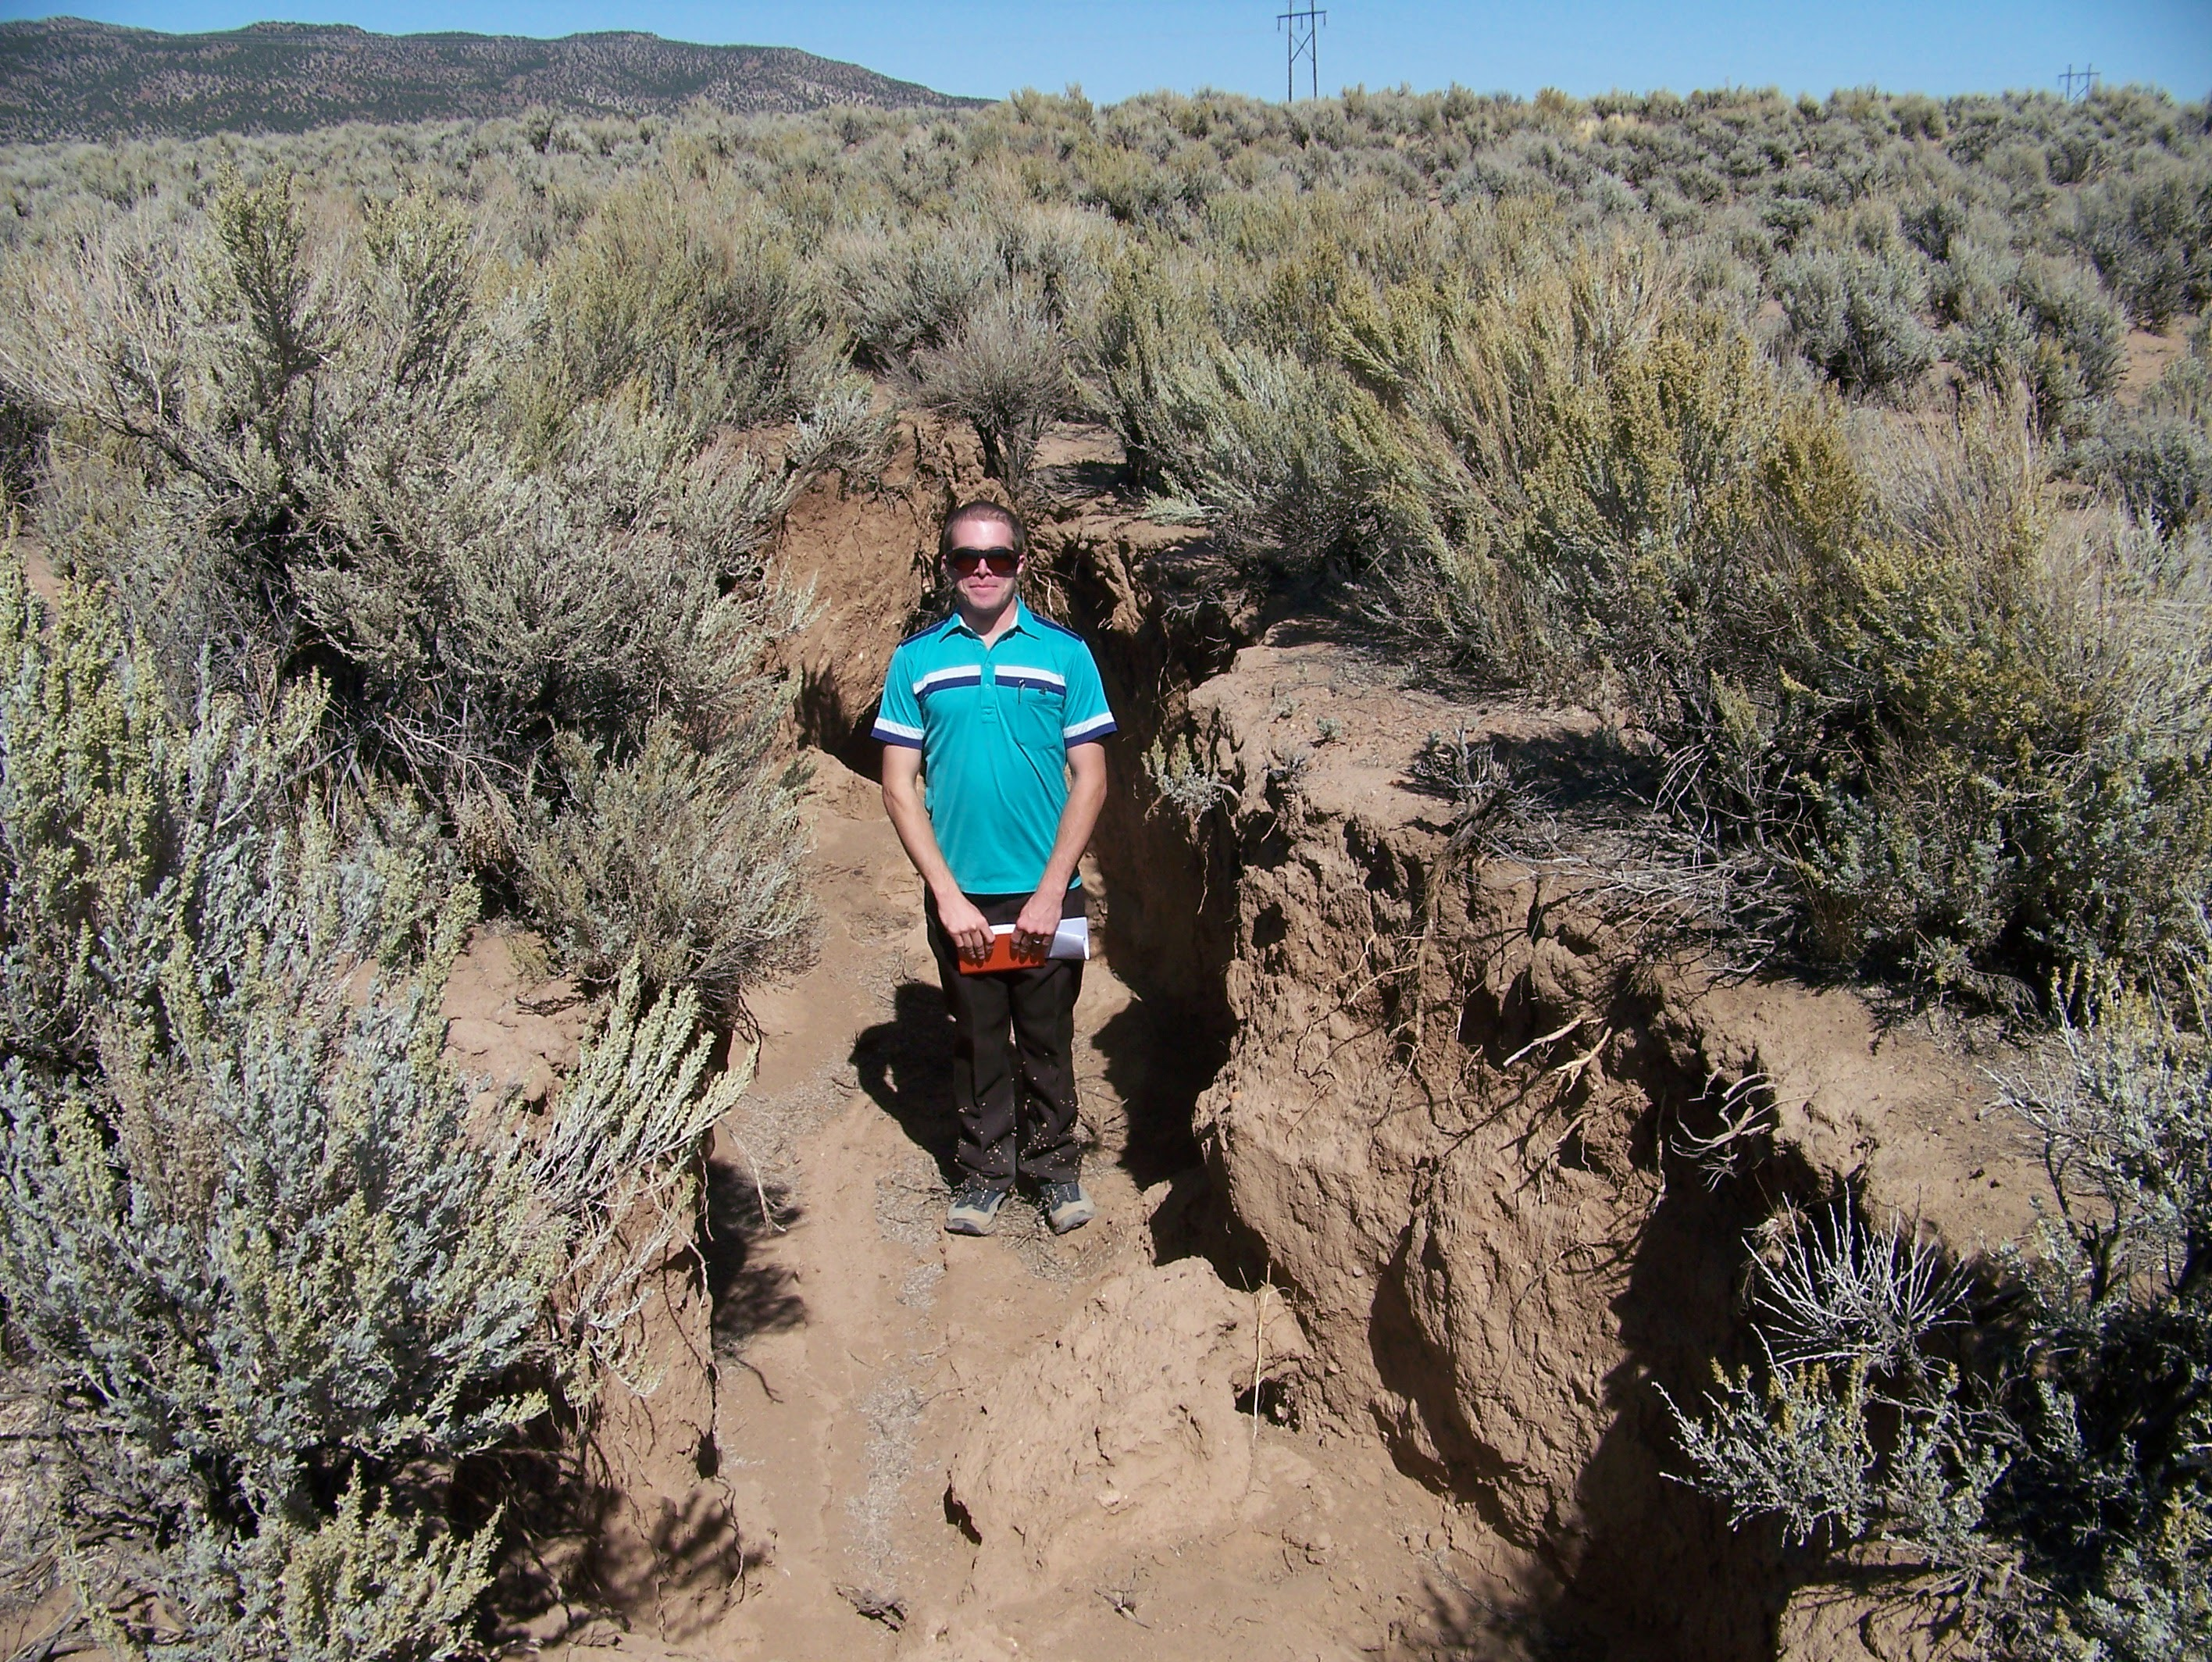 The author stands in a large ditch-like